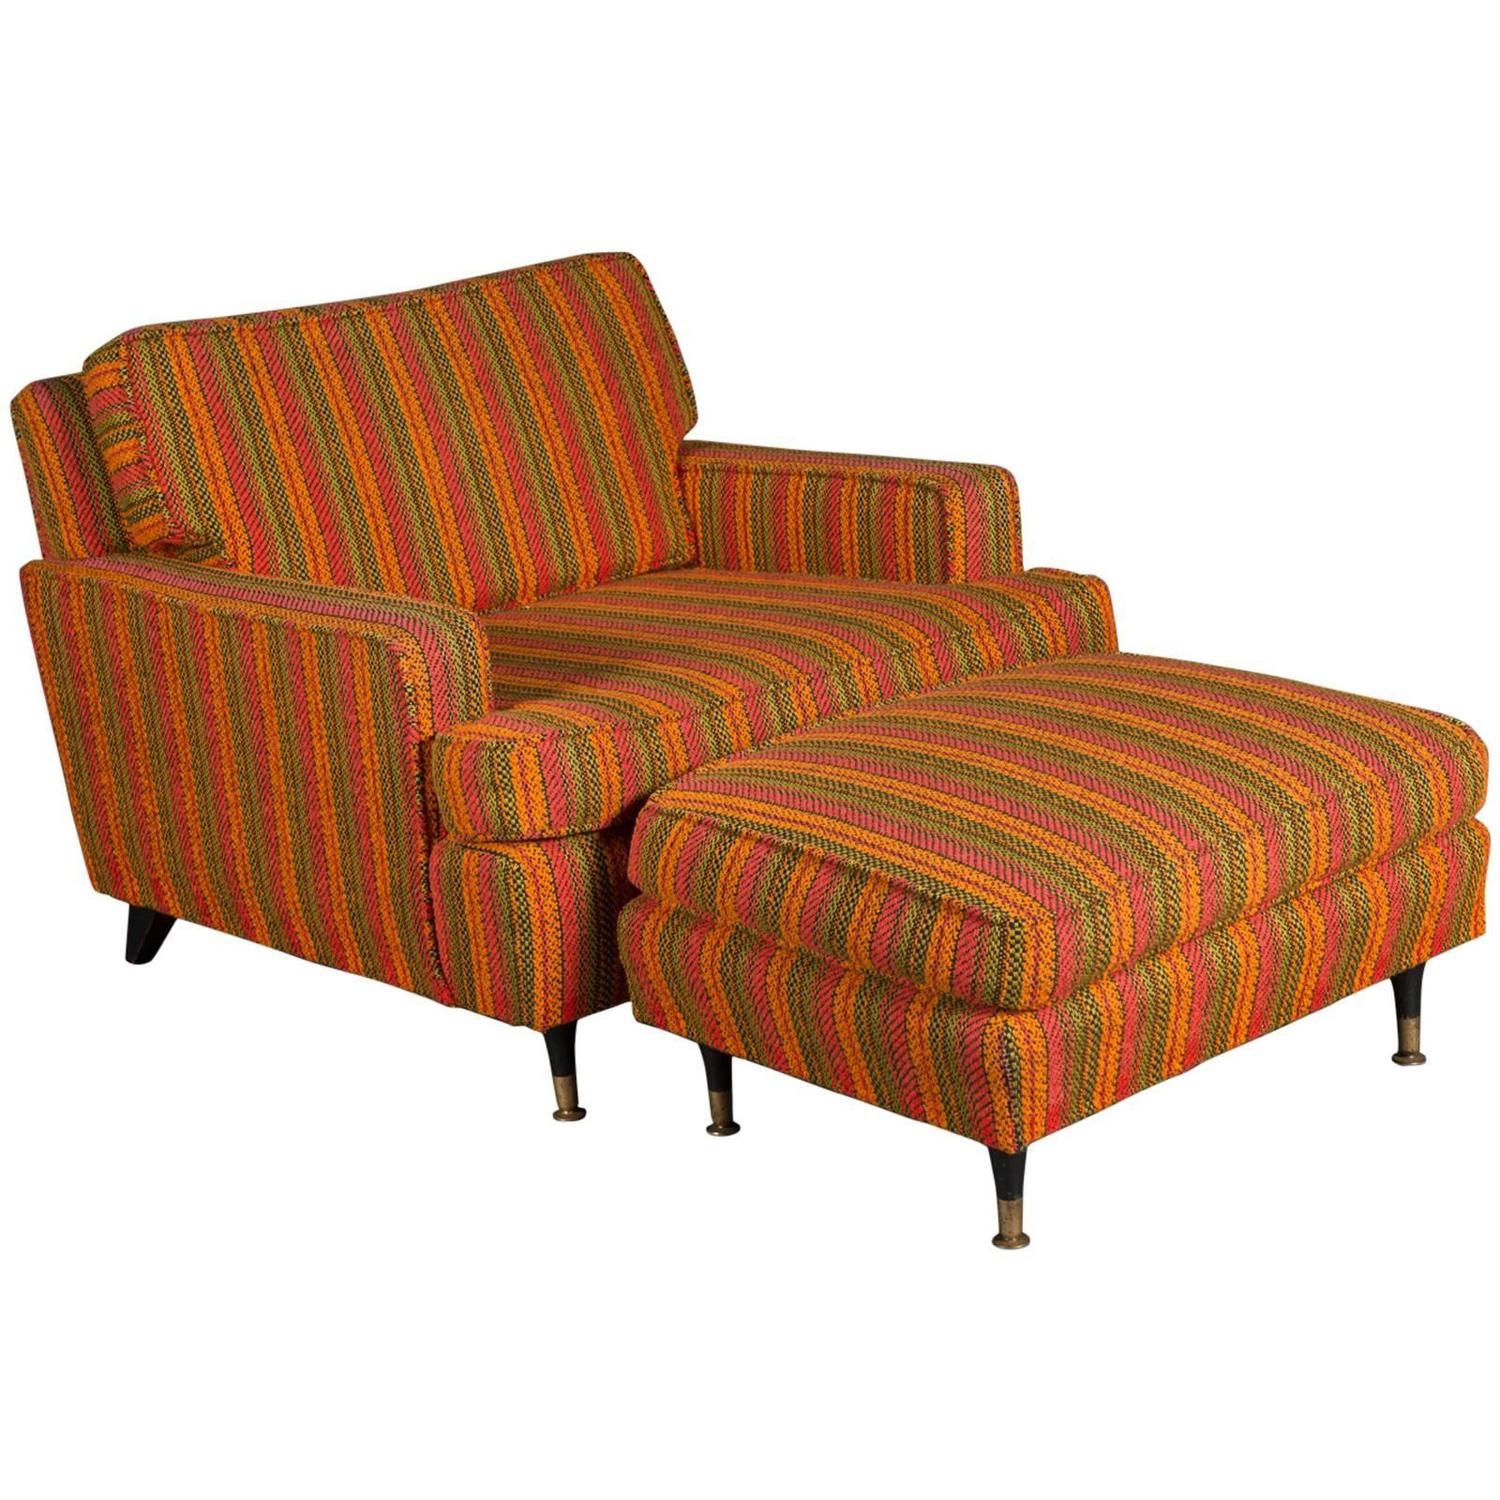 chairs and ottomans upholstered folding chair covers spandex unique 1950s modern lounge ottoman